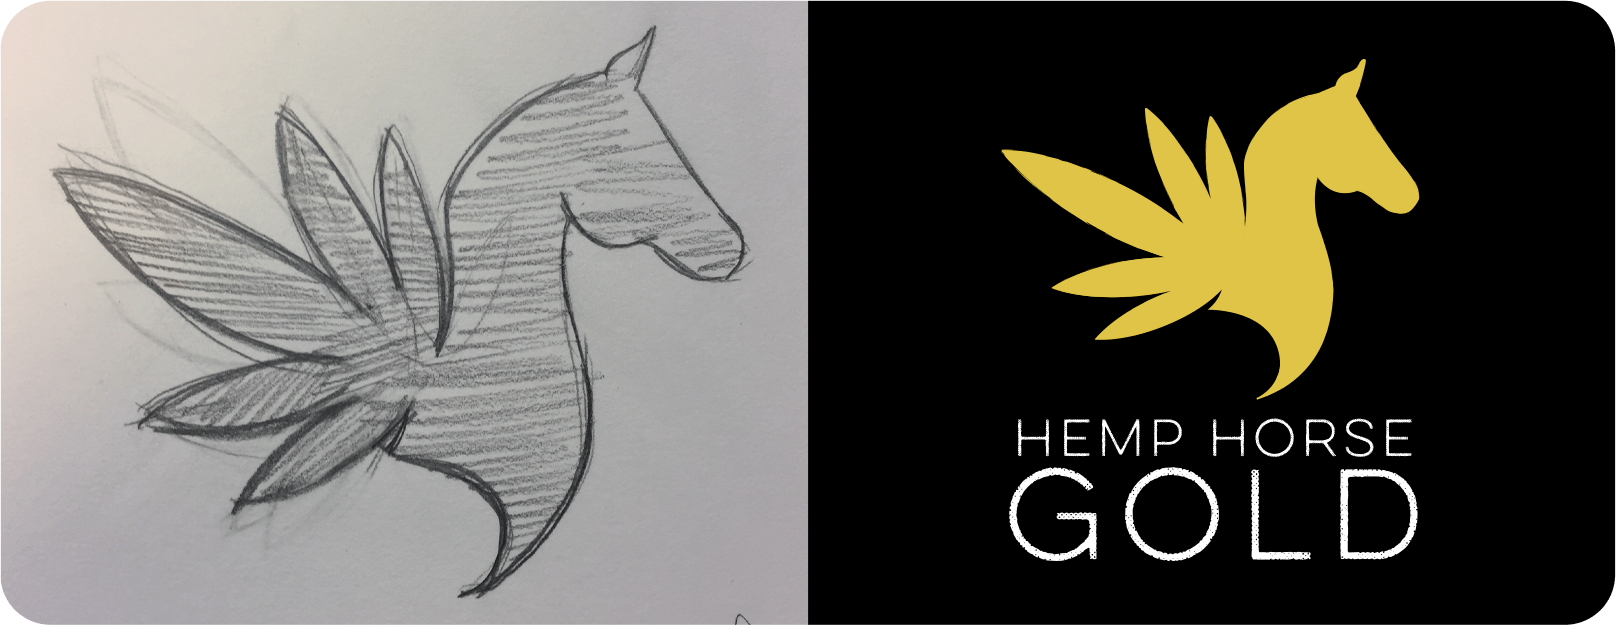 Hemp Horse logo design process, from sketch to finished product